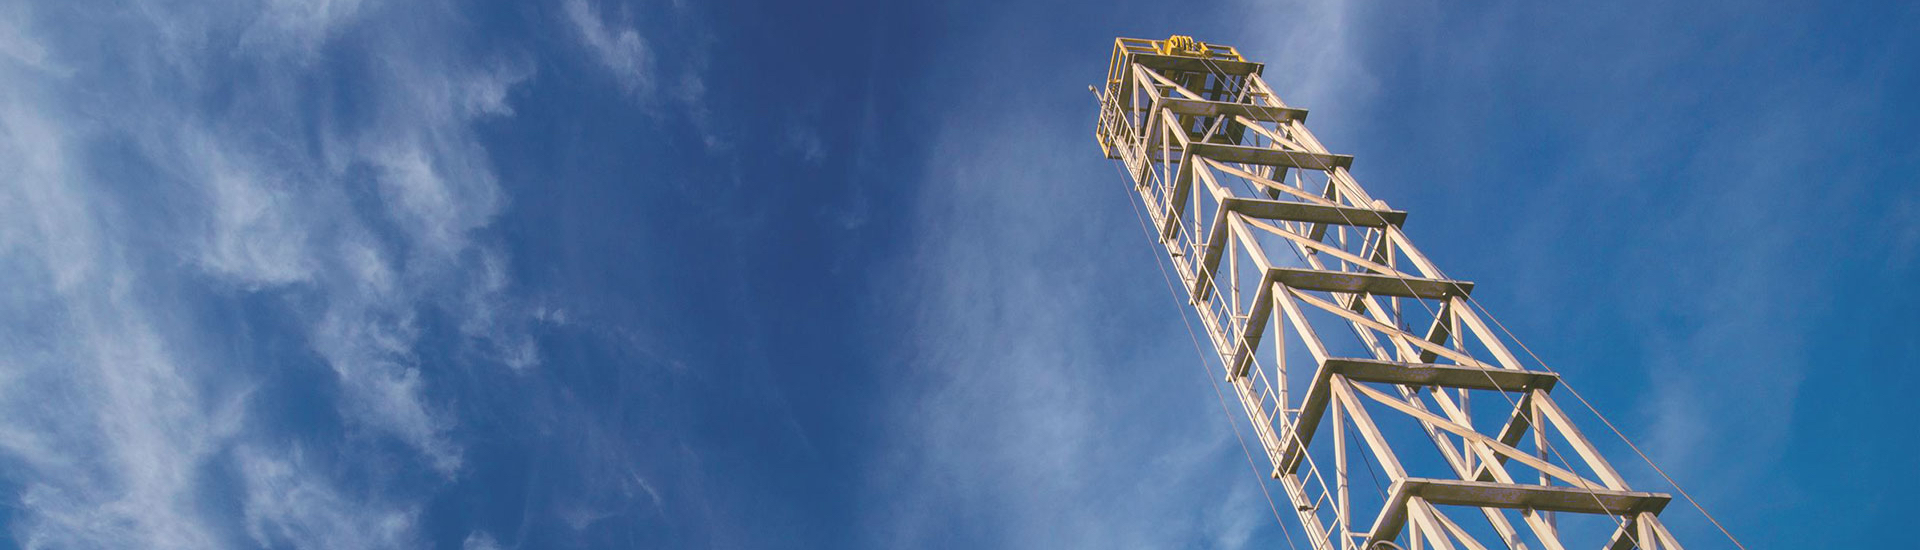 New Data: Water Use in Hydraulic Fracturing a Key Risk in